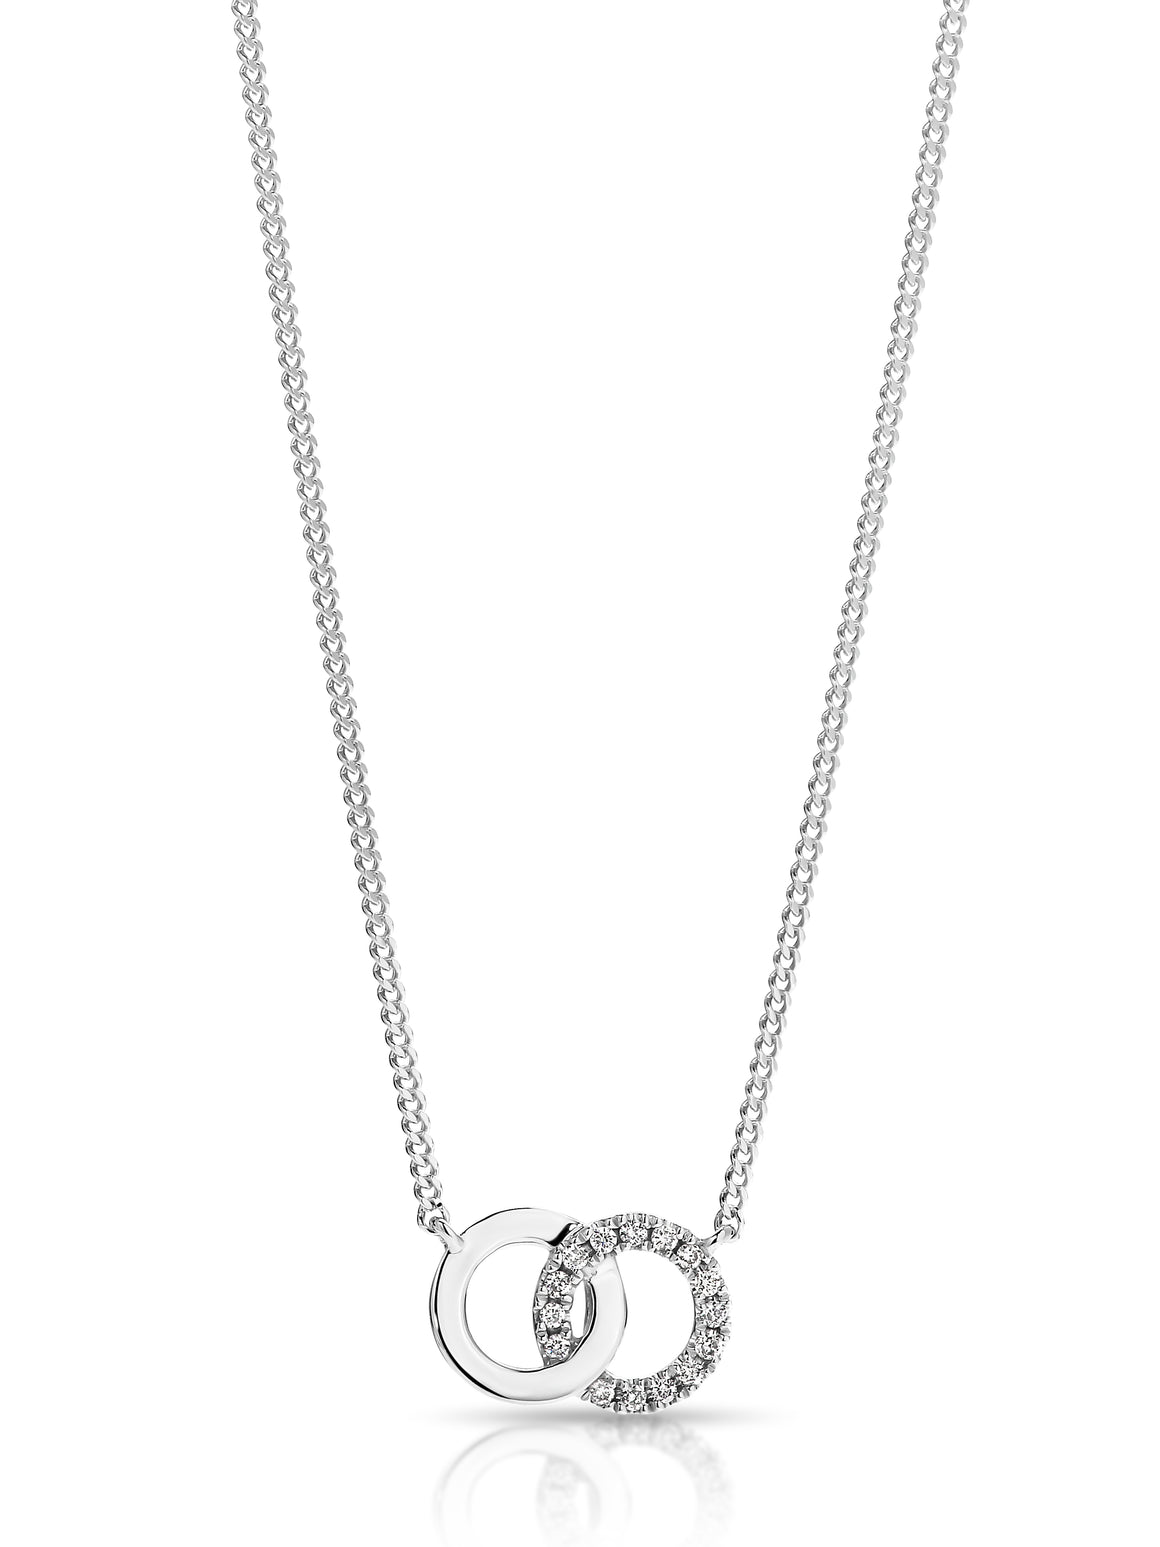 9ct Gold and Diamond 'Infinity Moon' Necklace - Gemma Stone  ABN:51 621 127 866